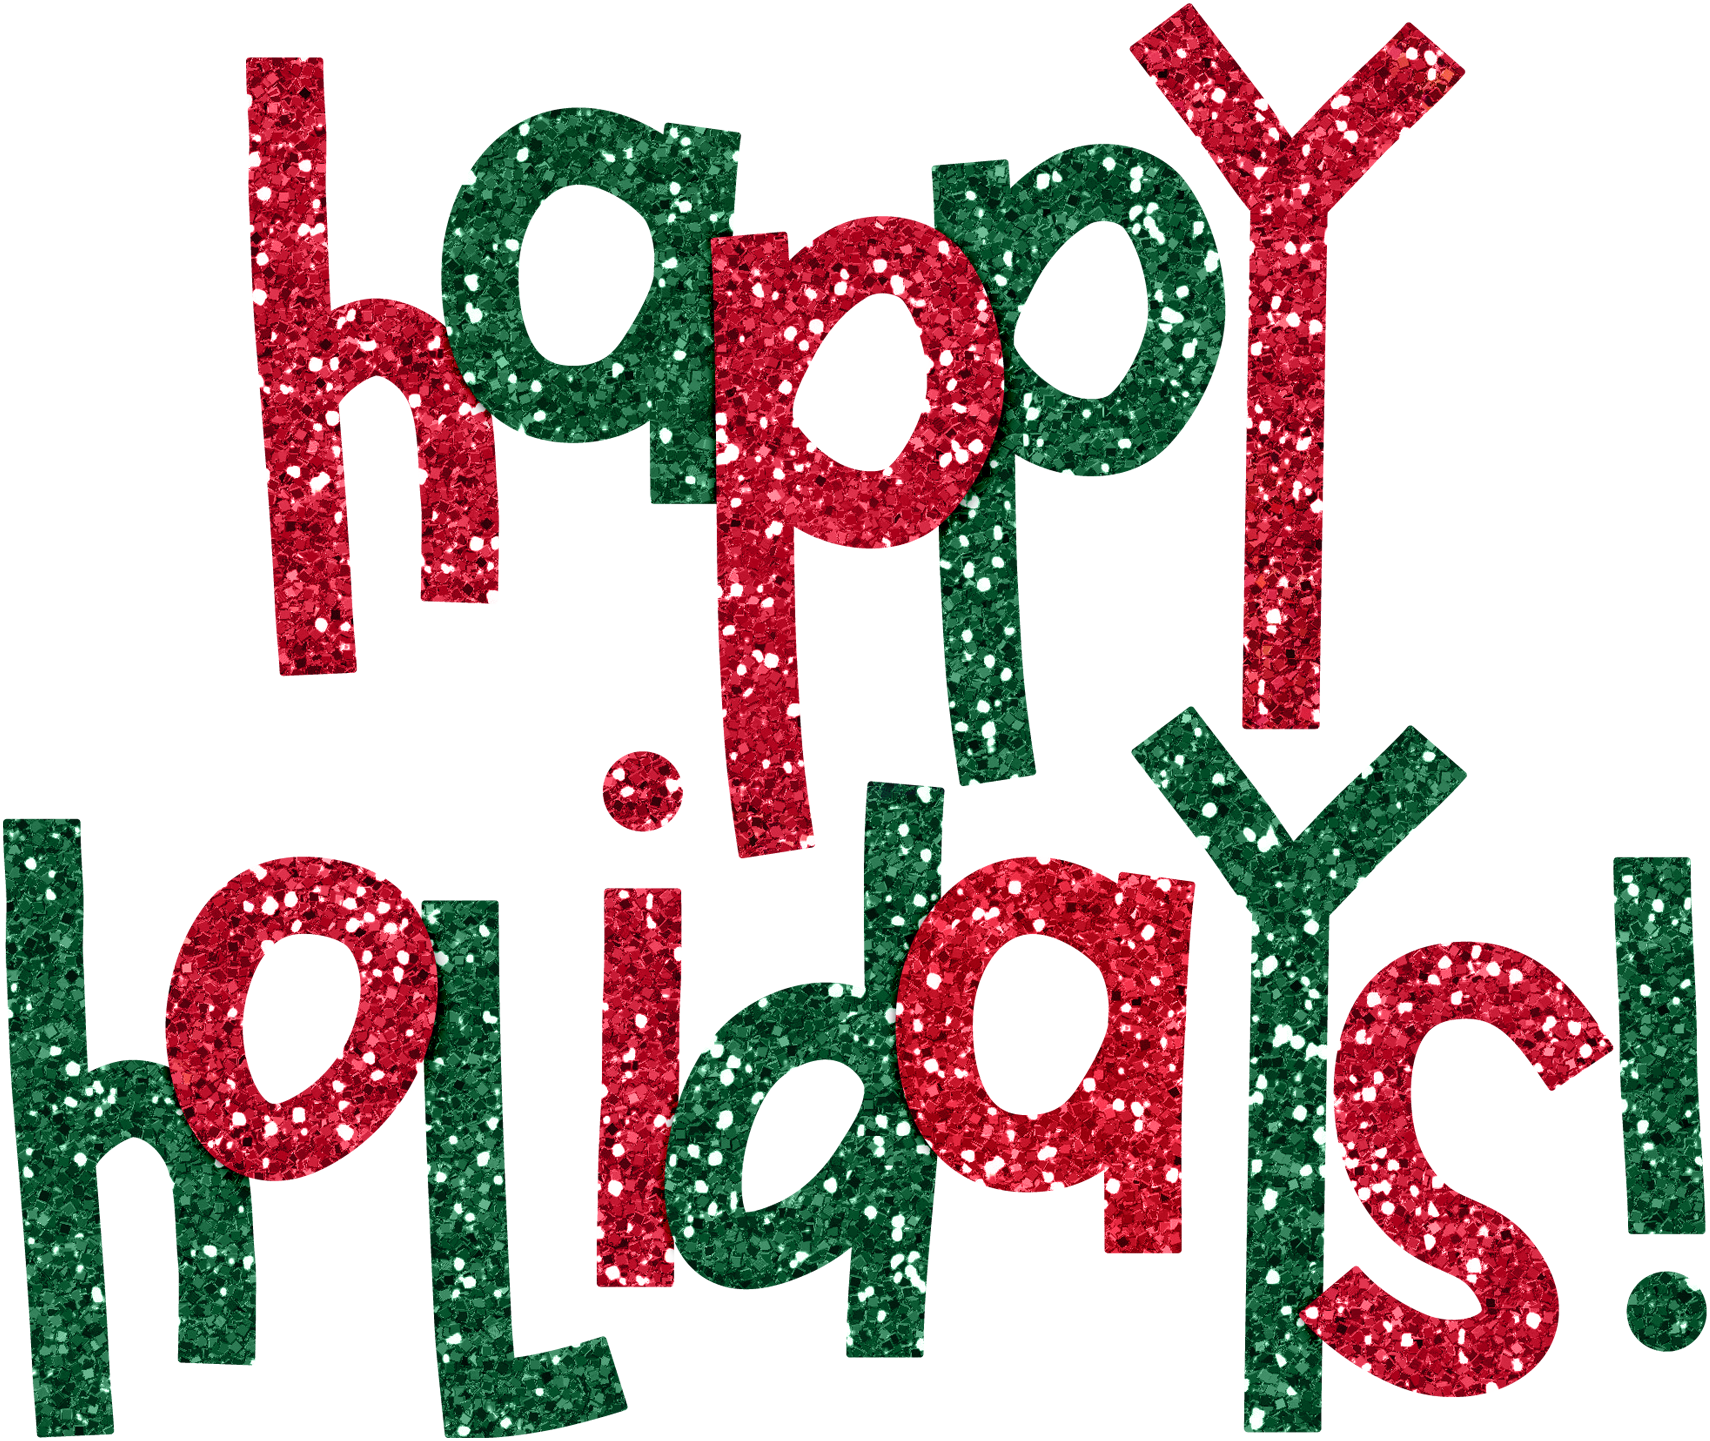 holidays png transparent holidays png images pluspng rh pluspng com happy holidays clip art in green happy holidays clip art with lights